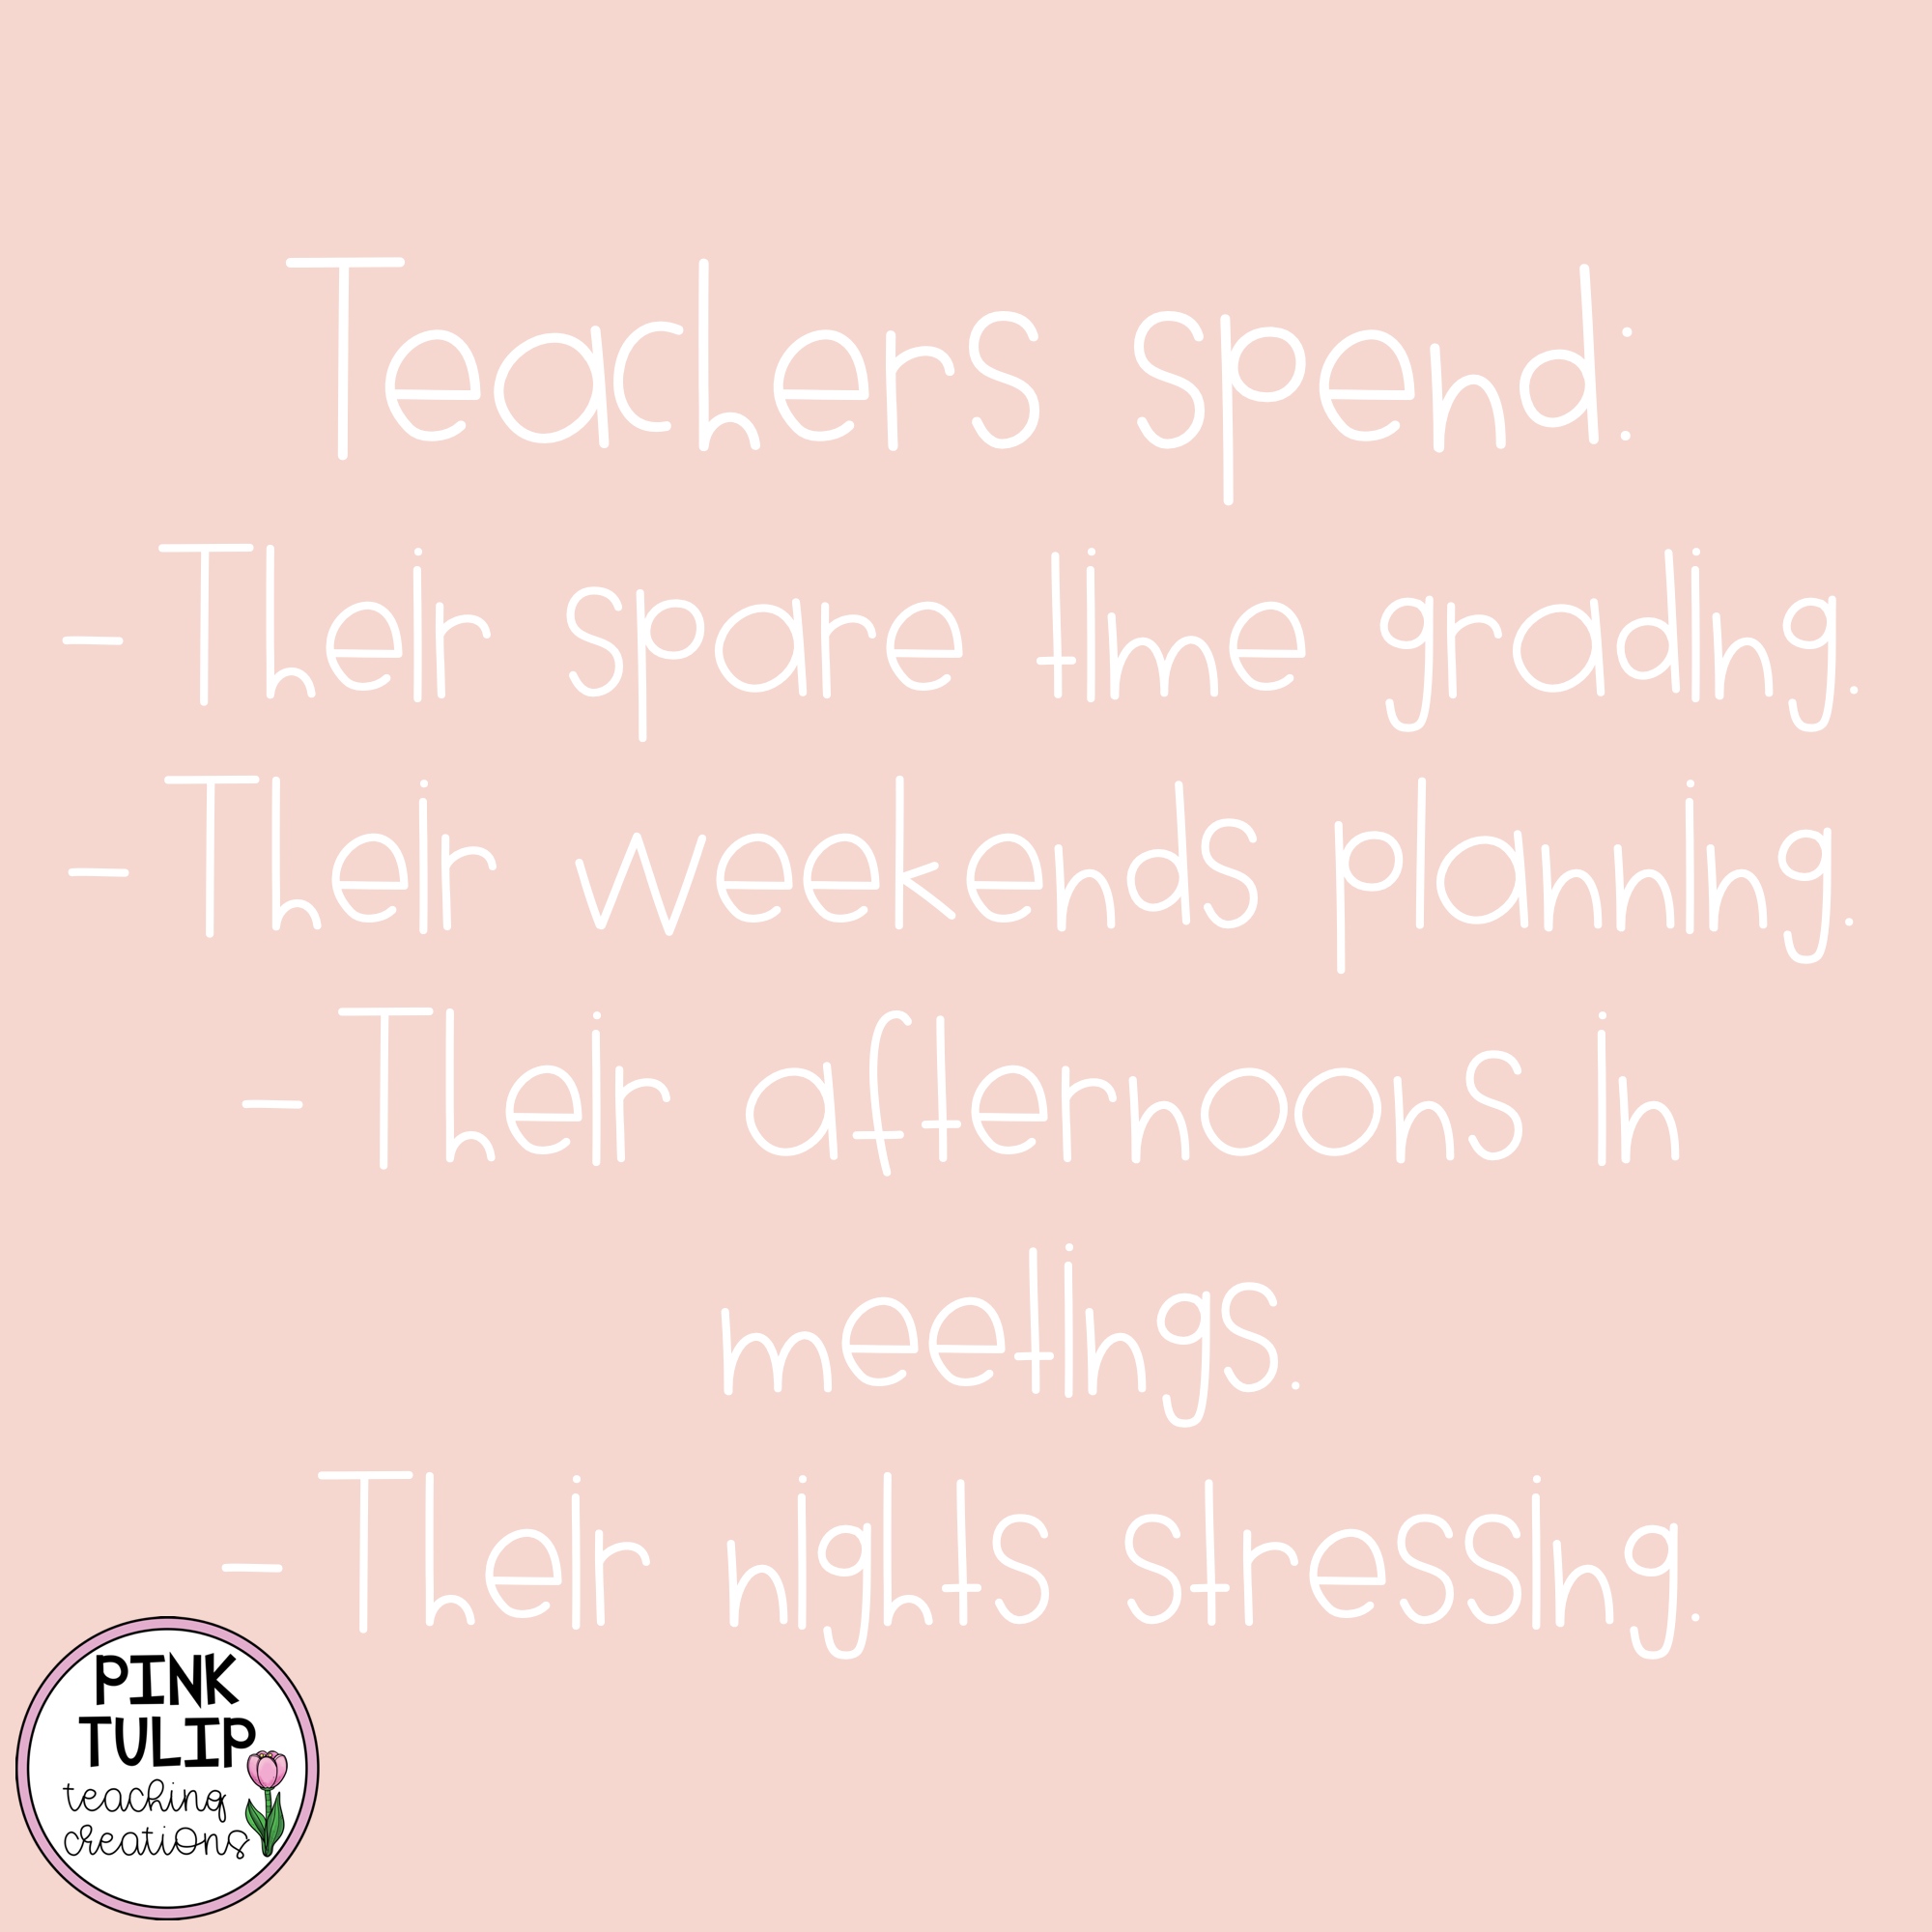 Teachers Spend Their Spare Time Grading Their Weekends